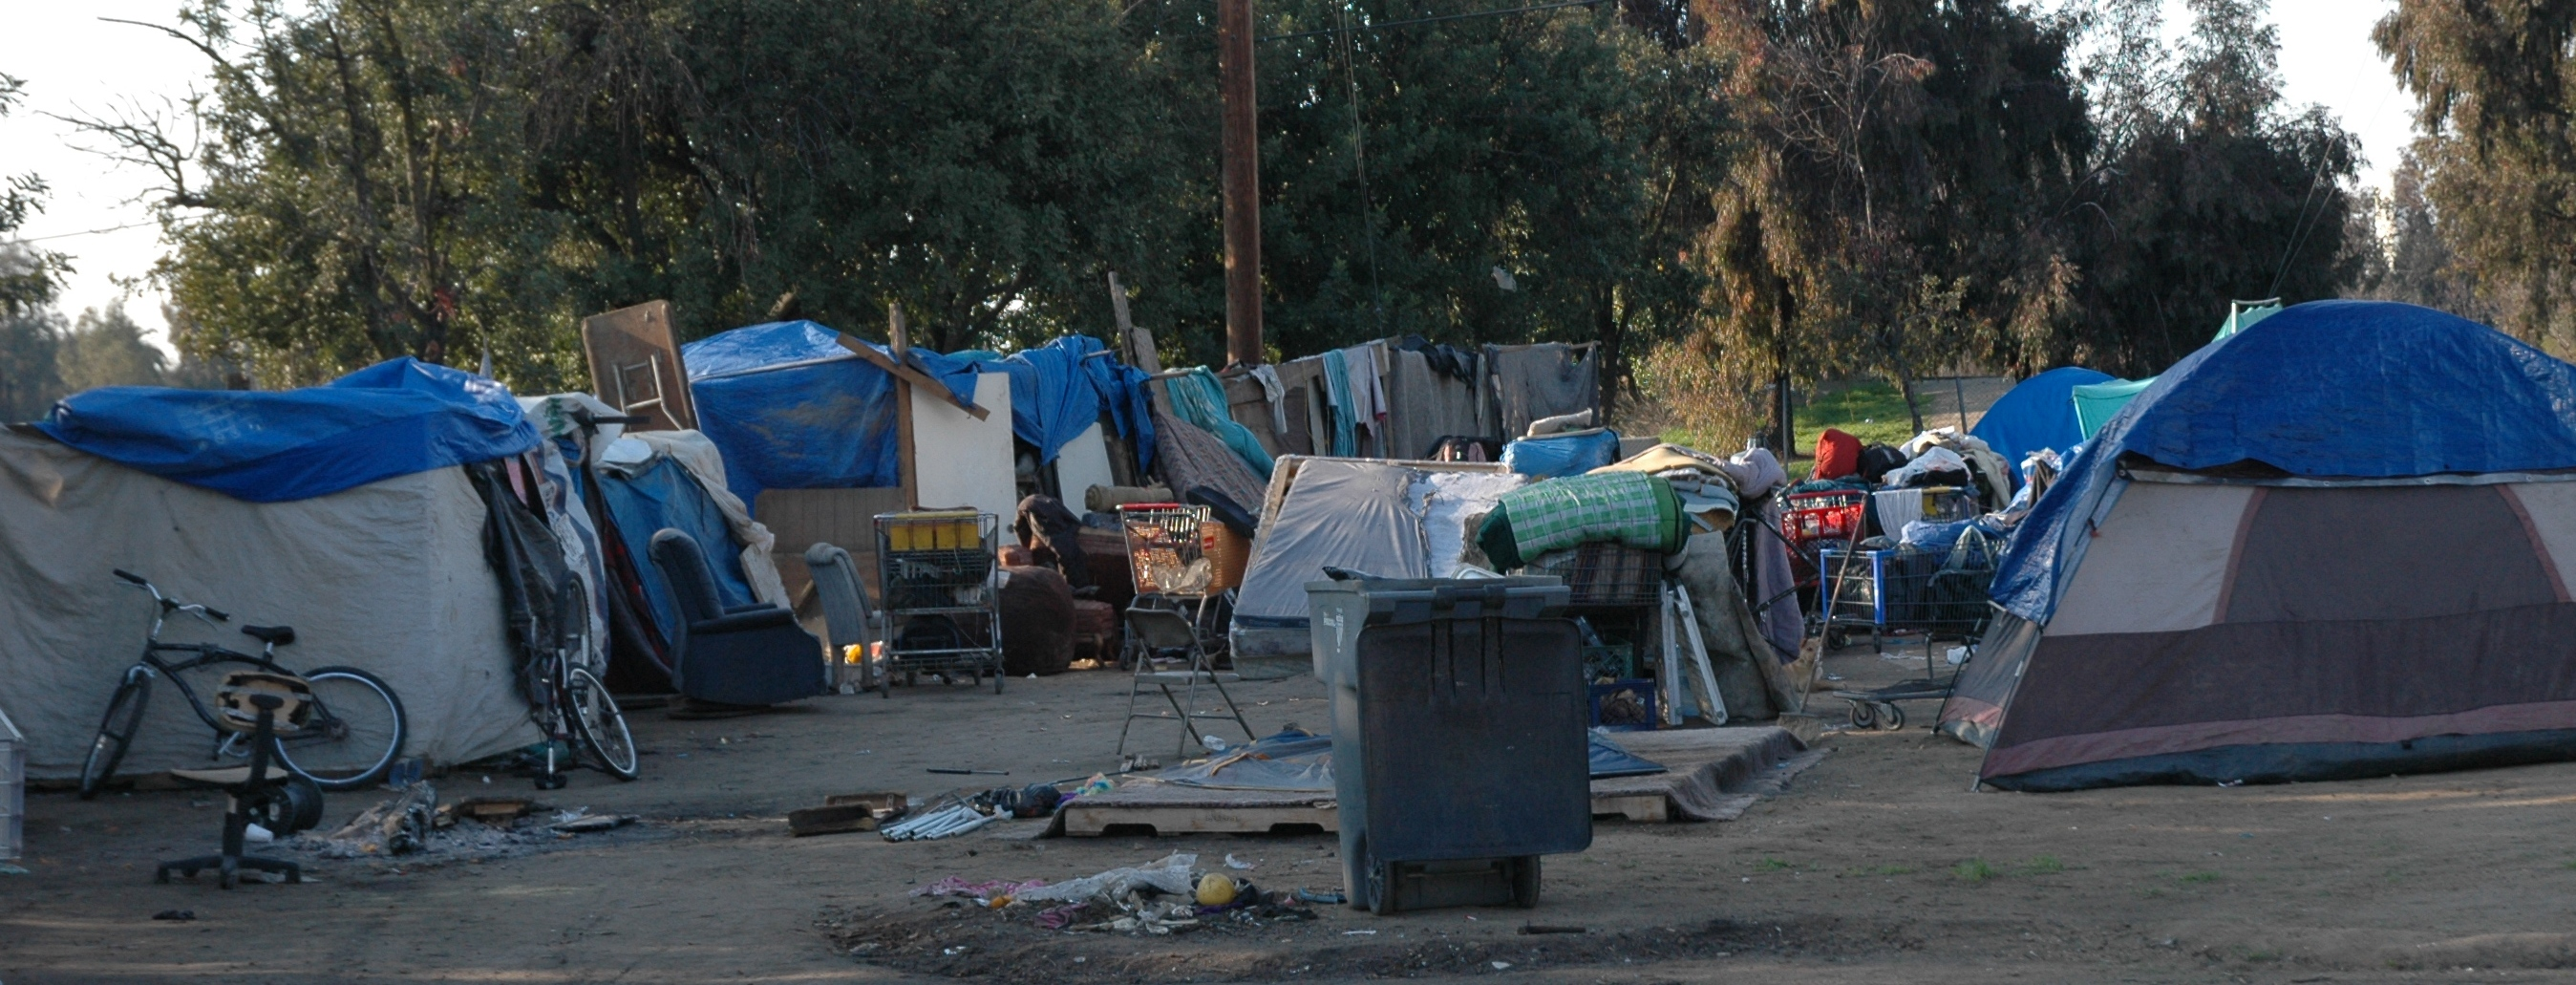 Truck Shows Near Me >> Fresno has no Heart - Will Evict the Homeless on Valentines Day : Indybay